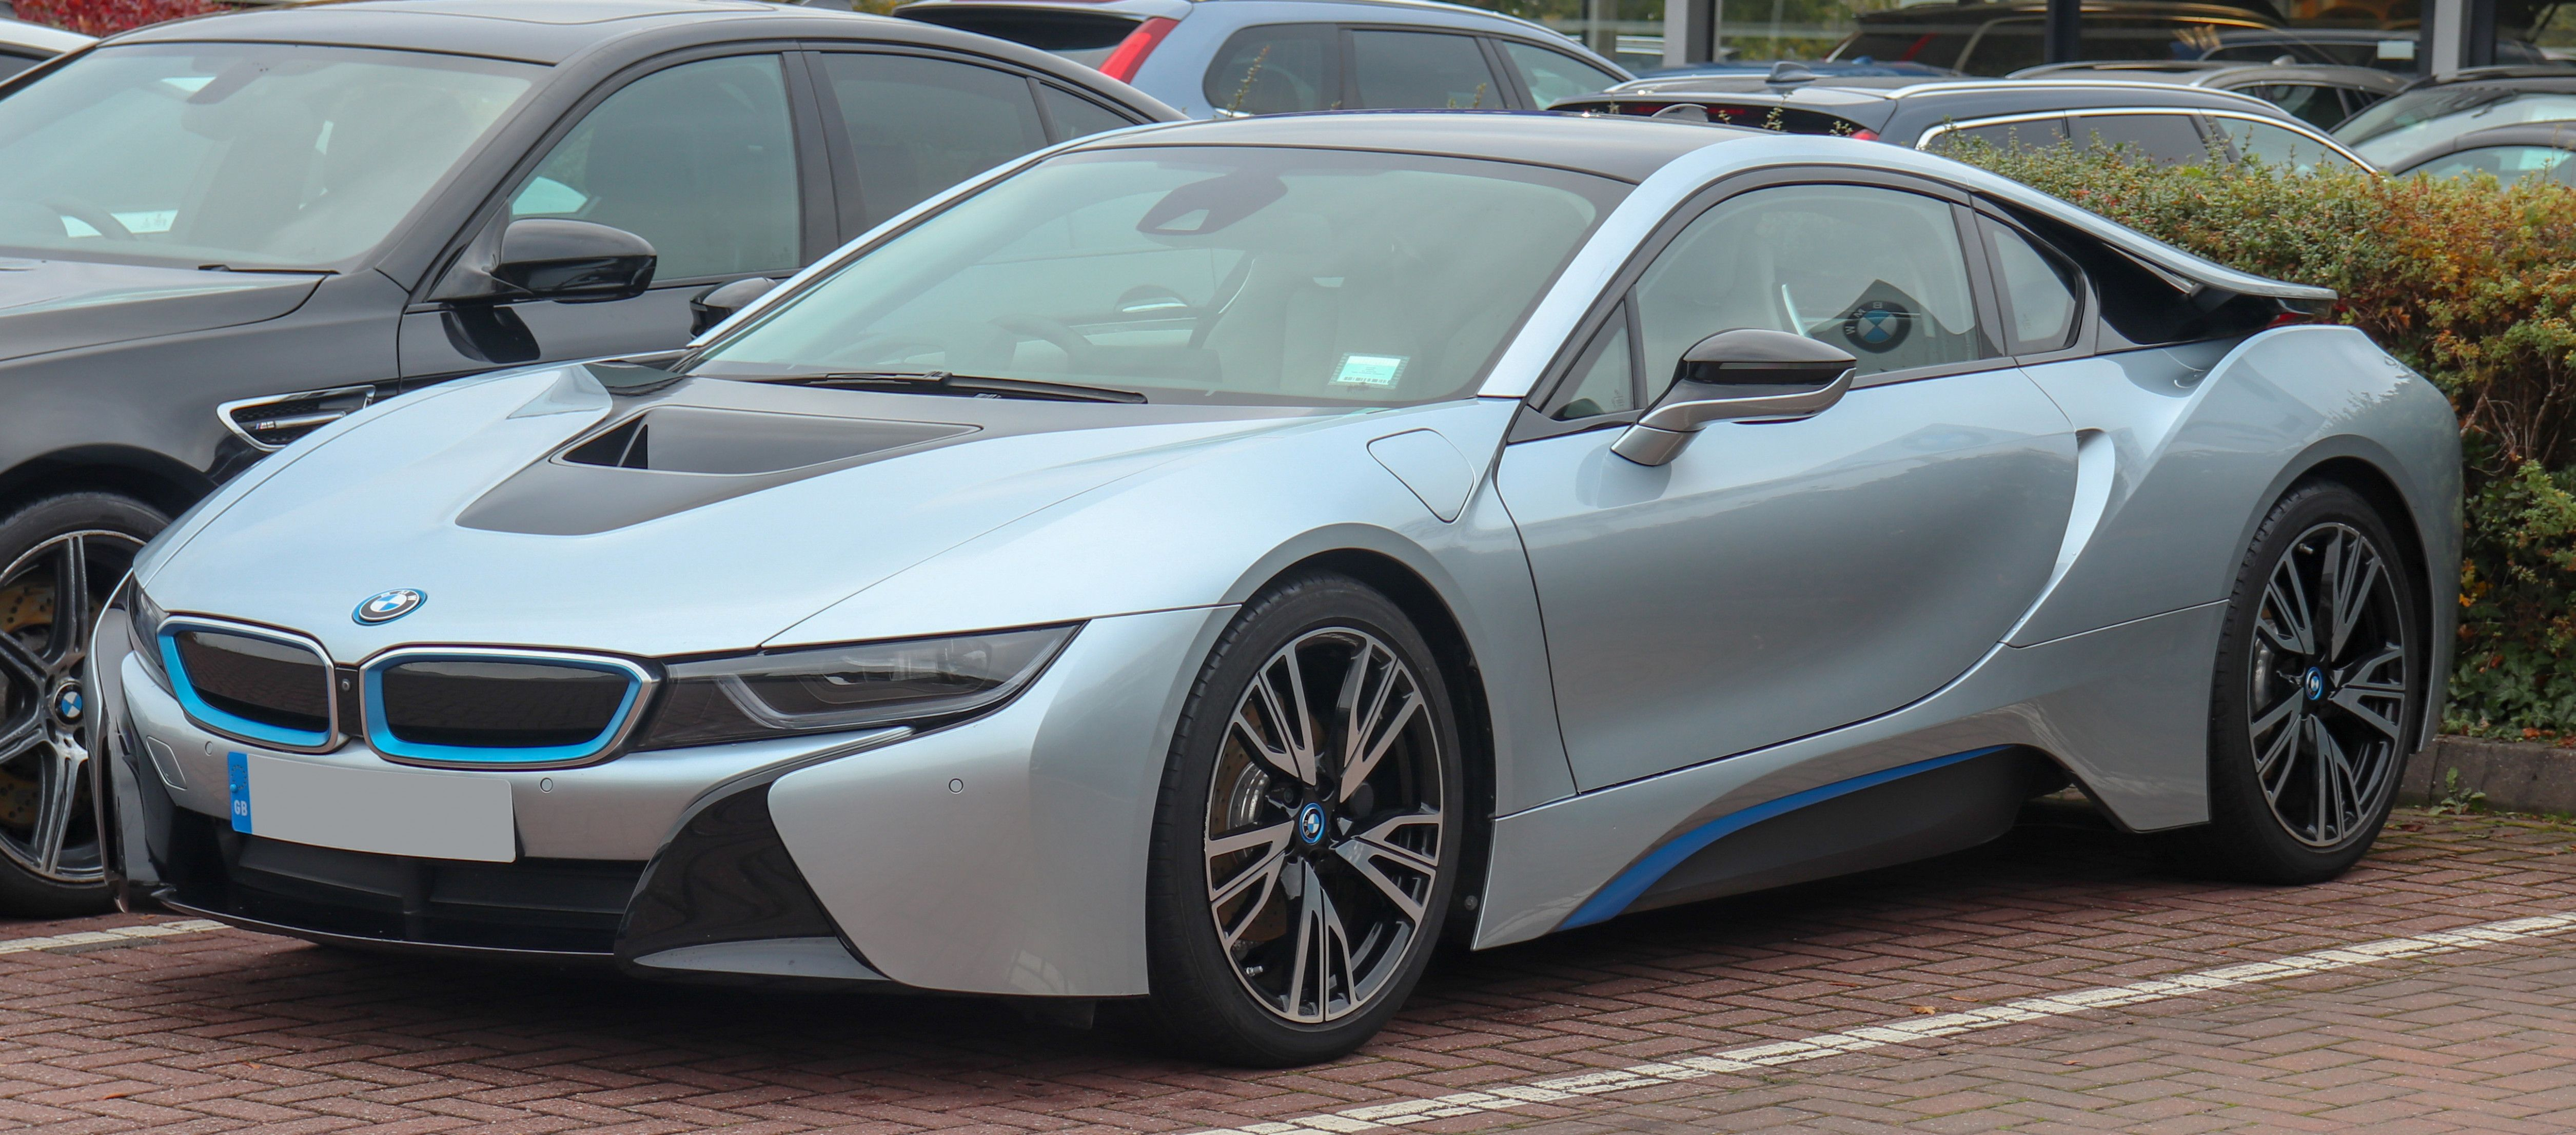 7 Facts You Never Knew About Bmw I7 Wiki Bmw I7 Wiki Https Ift Tt 2opykhq